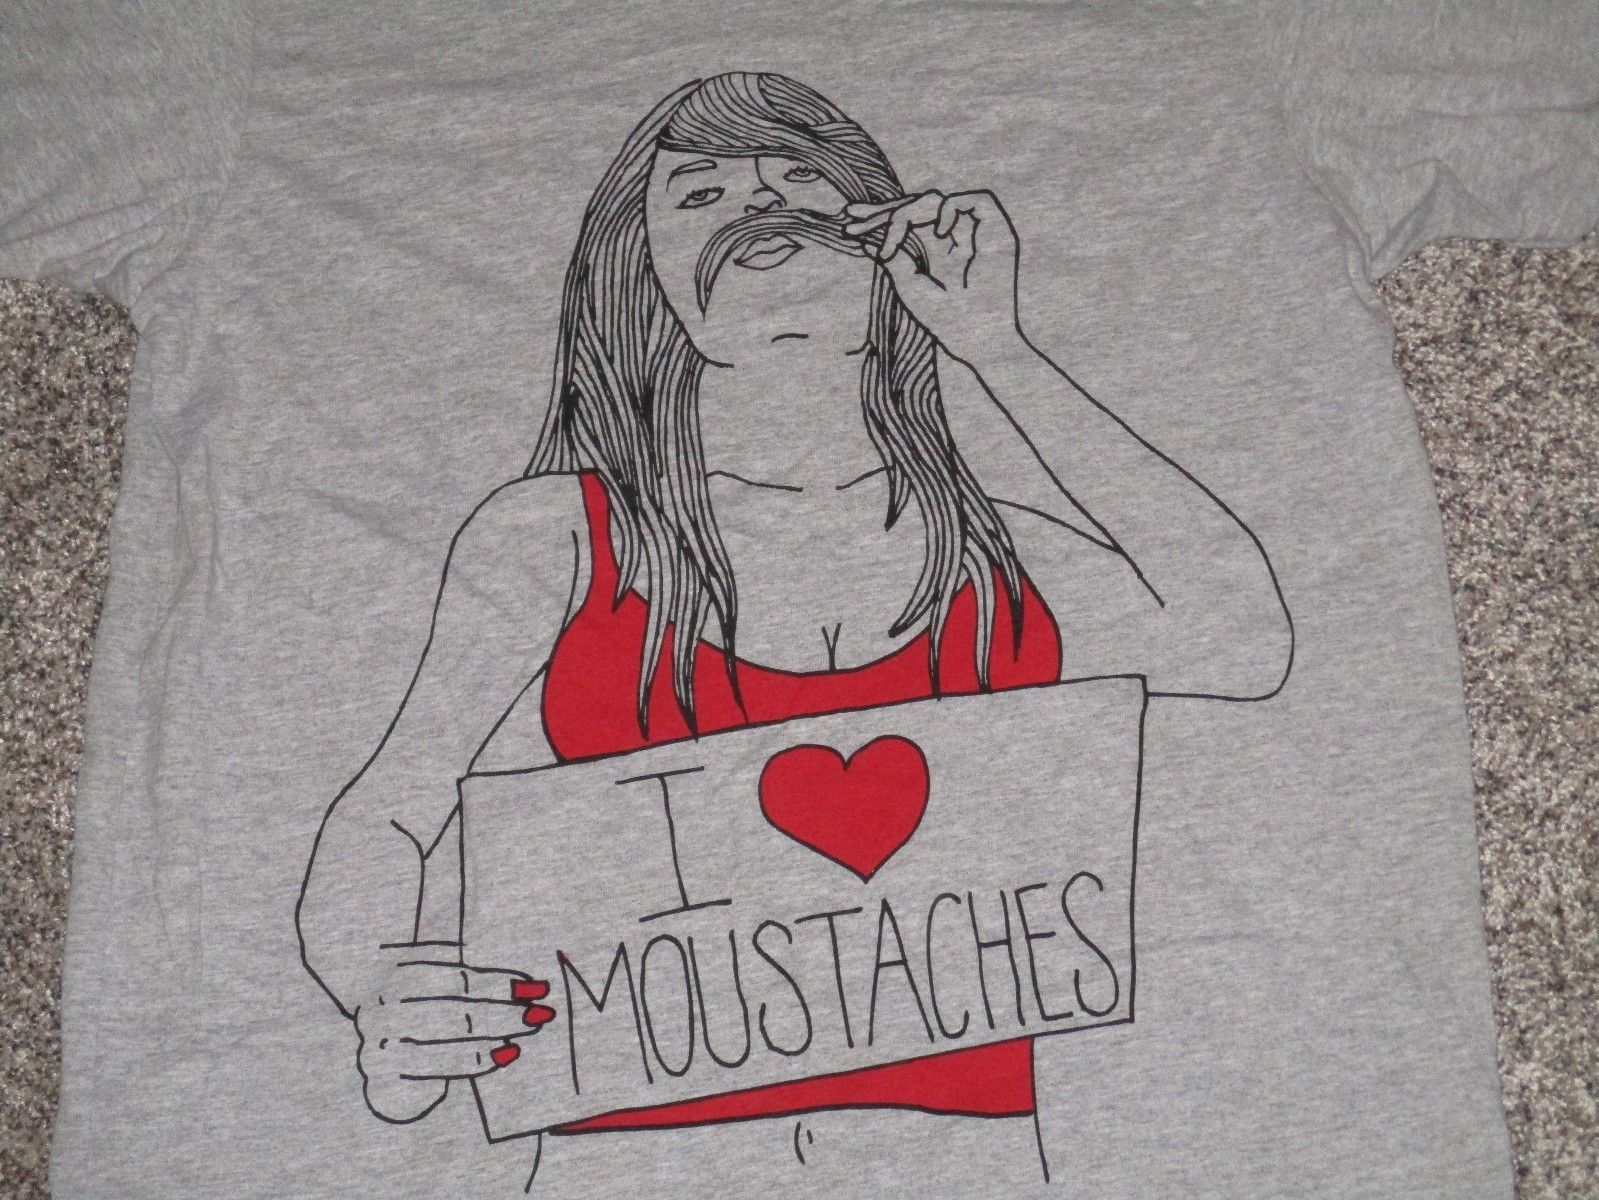 I Love Moustaches Short Sleeve T-Shirt, Men's Large, Gray, NWT